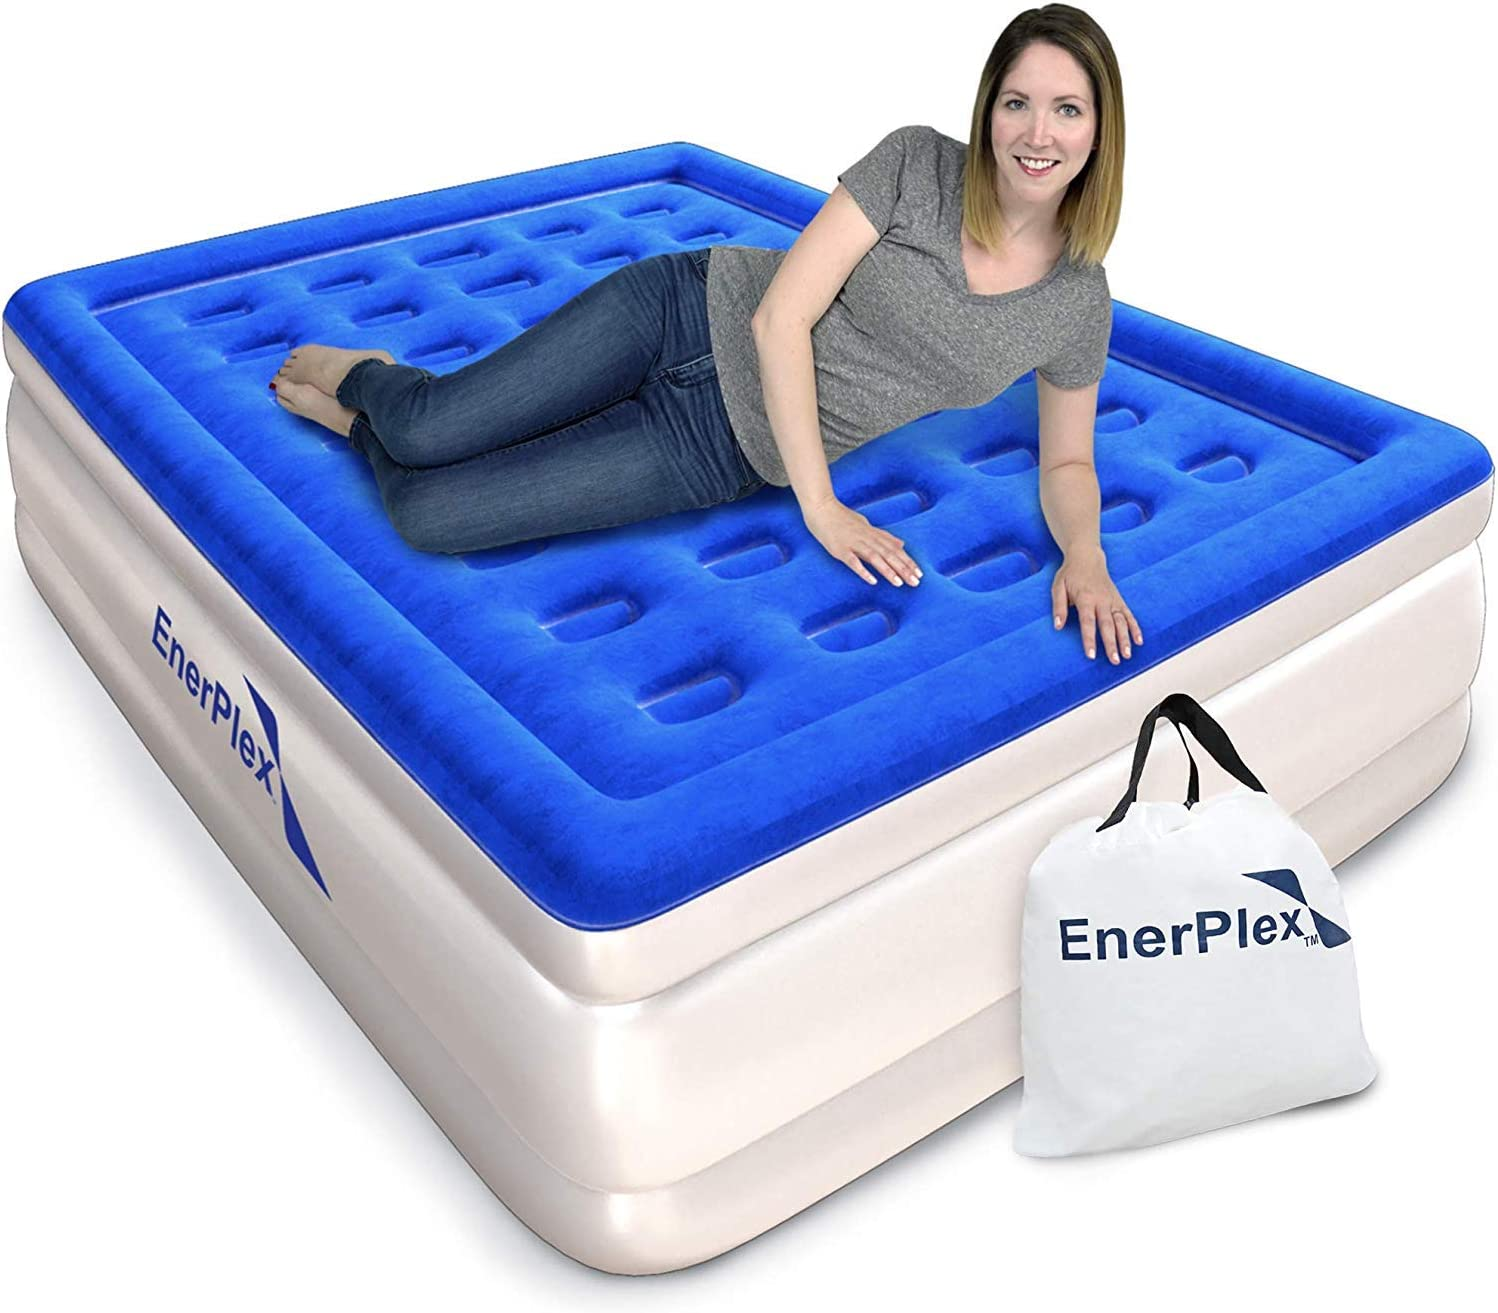 Max 54% OFF EnerPlex Queen Air Mattress for Camping Home - Inch 13 New Free Shipping Travel